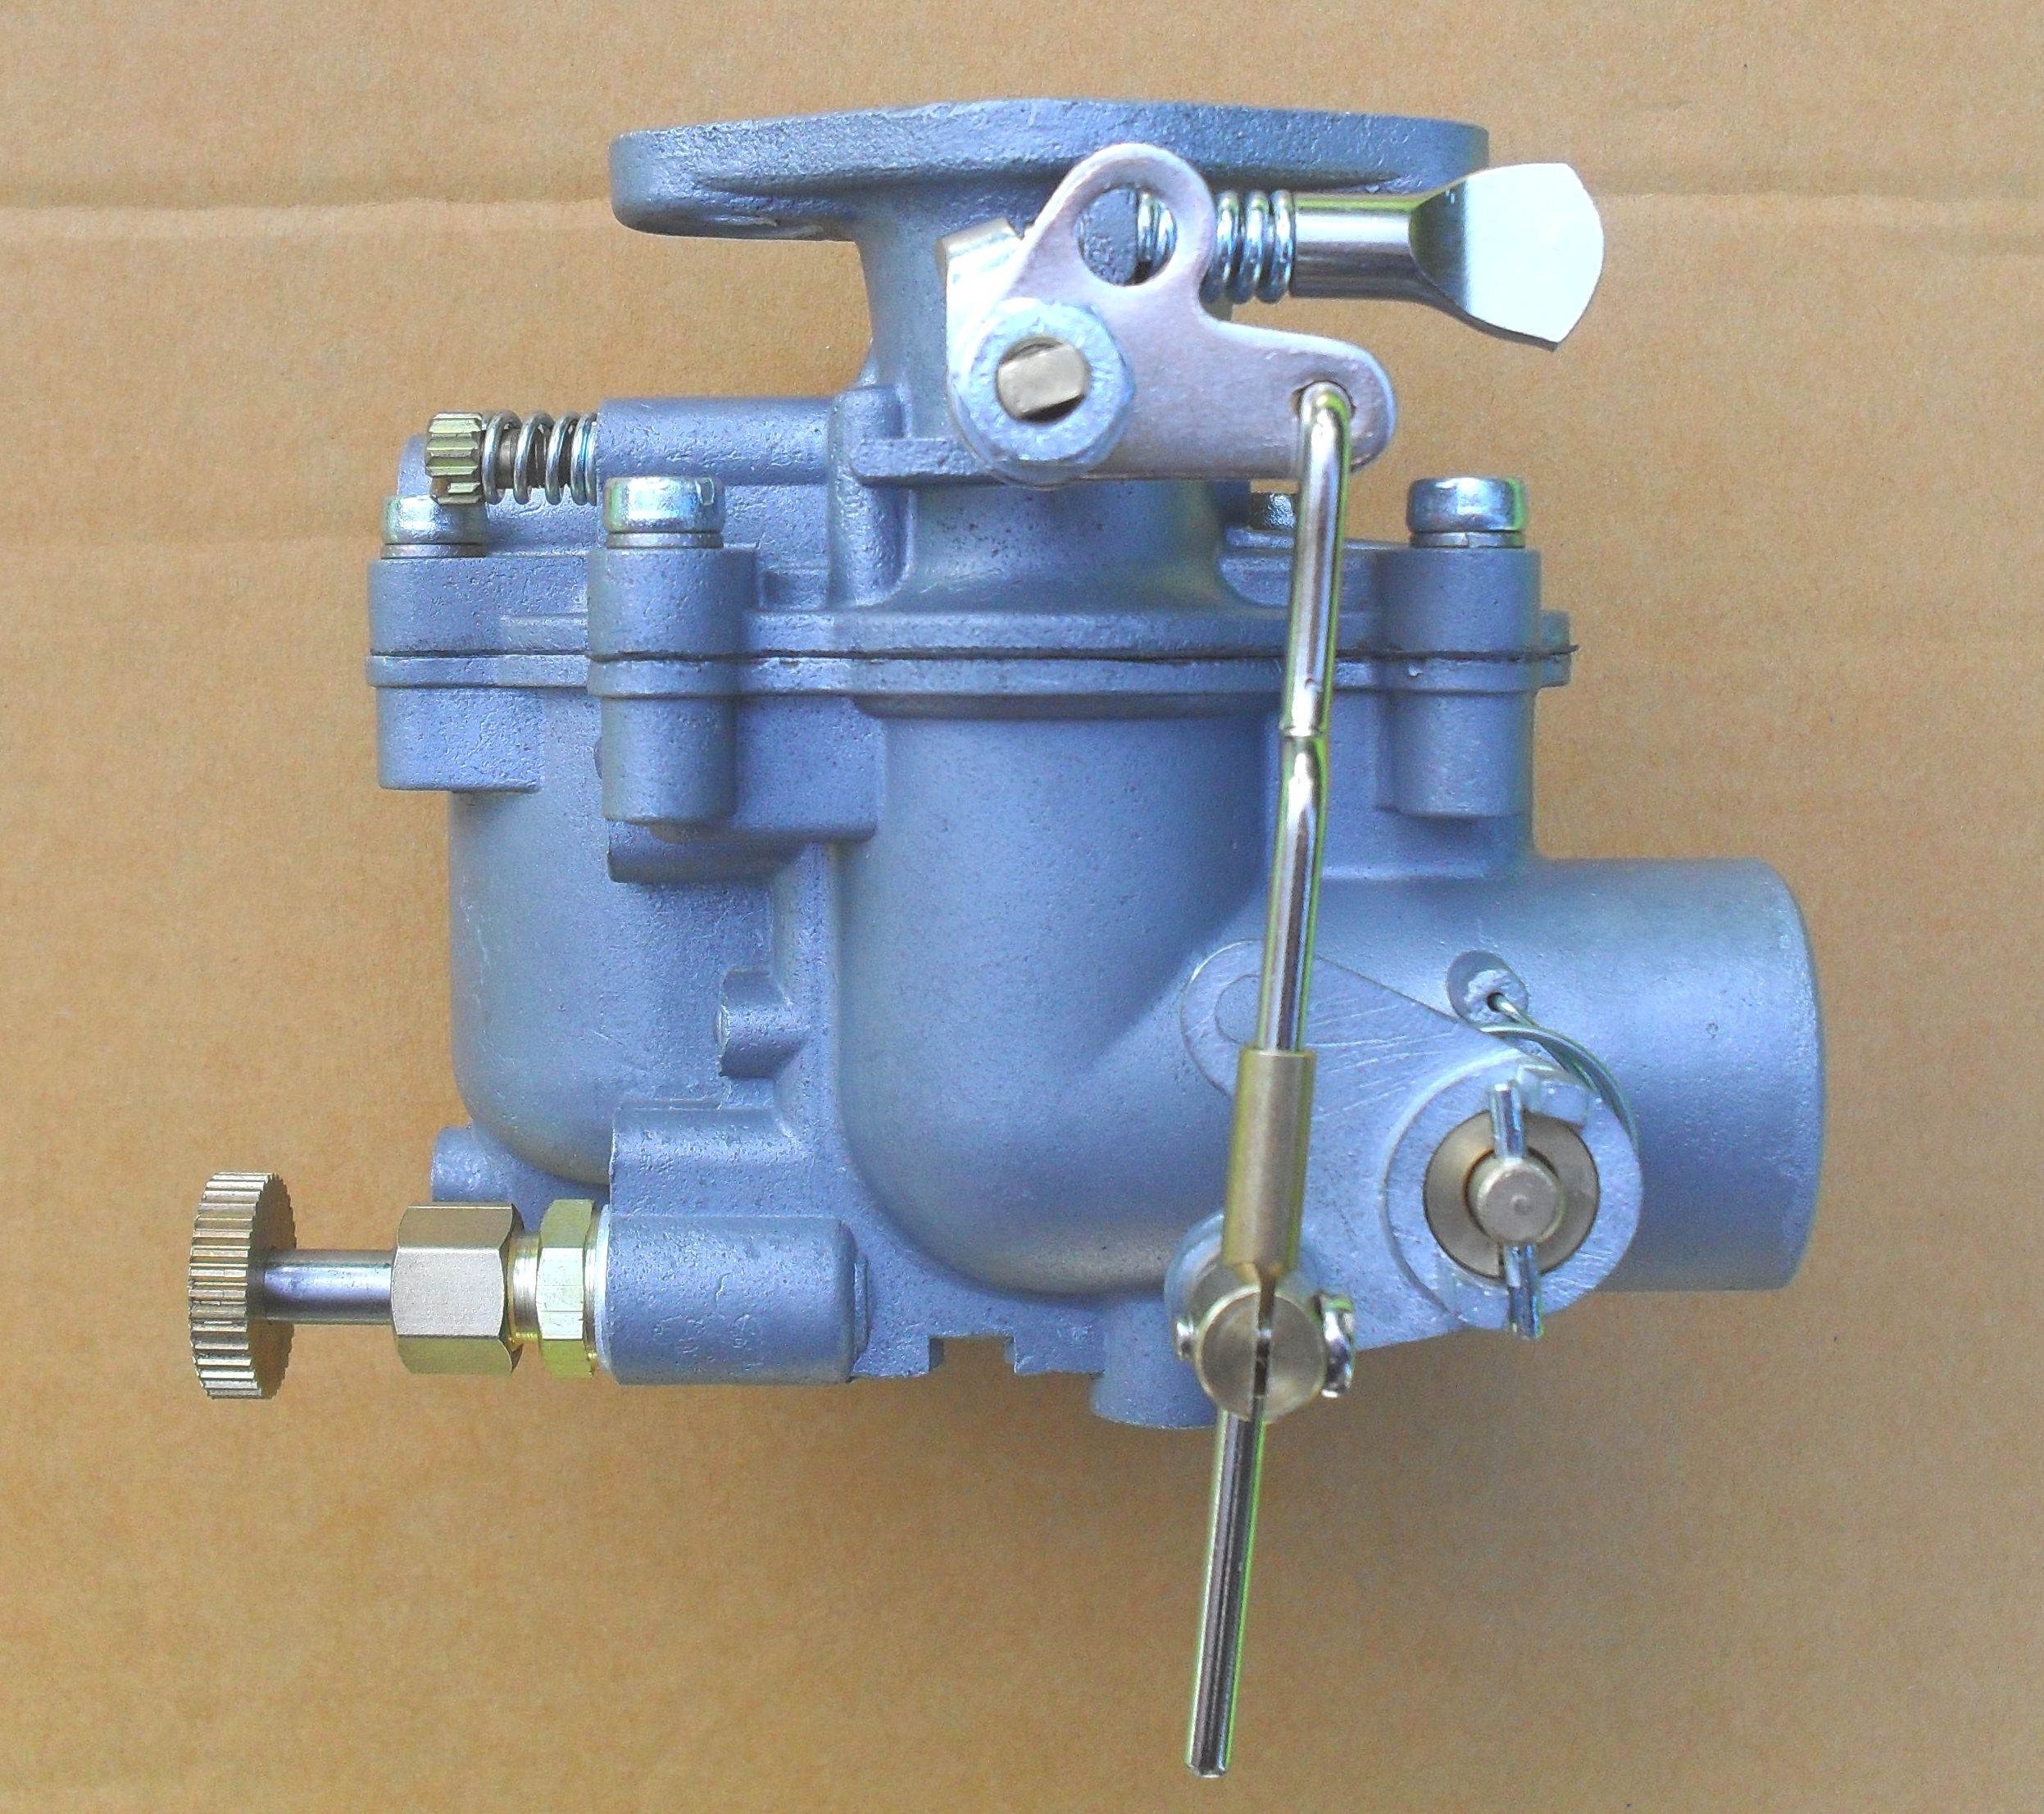 Villiers And Allen Scythe Parts Zenith Carburetor Diagram On Exploded 24t2 Grey Ferguson Carburettor Complete Recon Brought Back To As Near New Condition Possible Nearly All Removable Are Refitted With